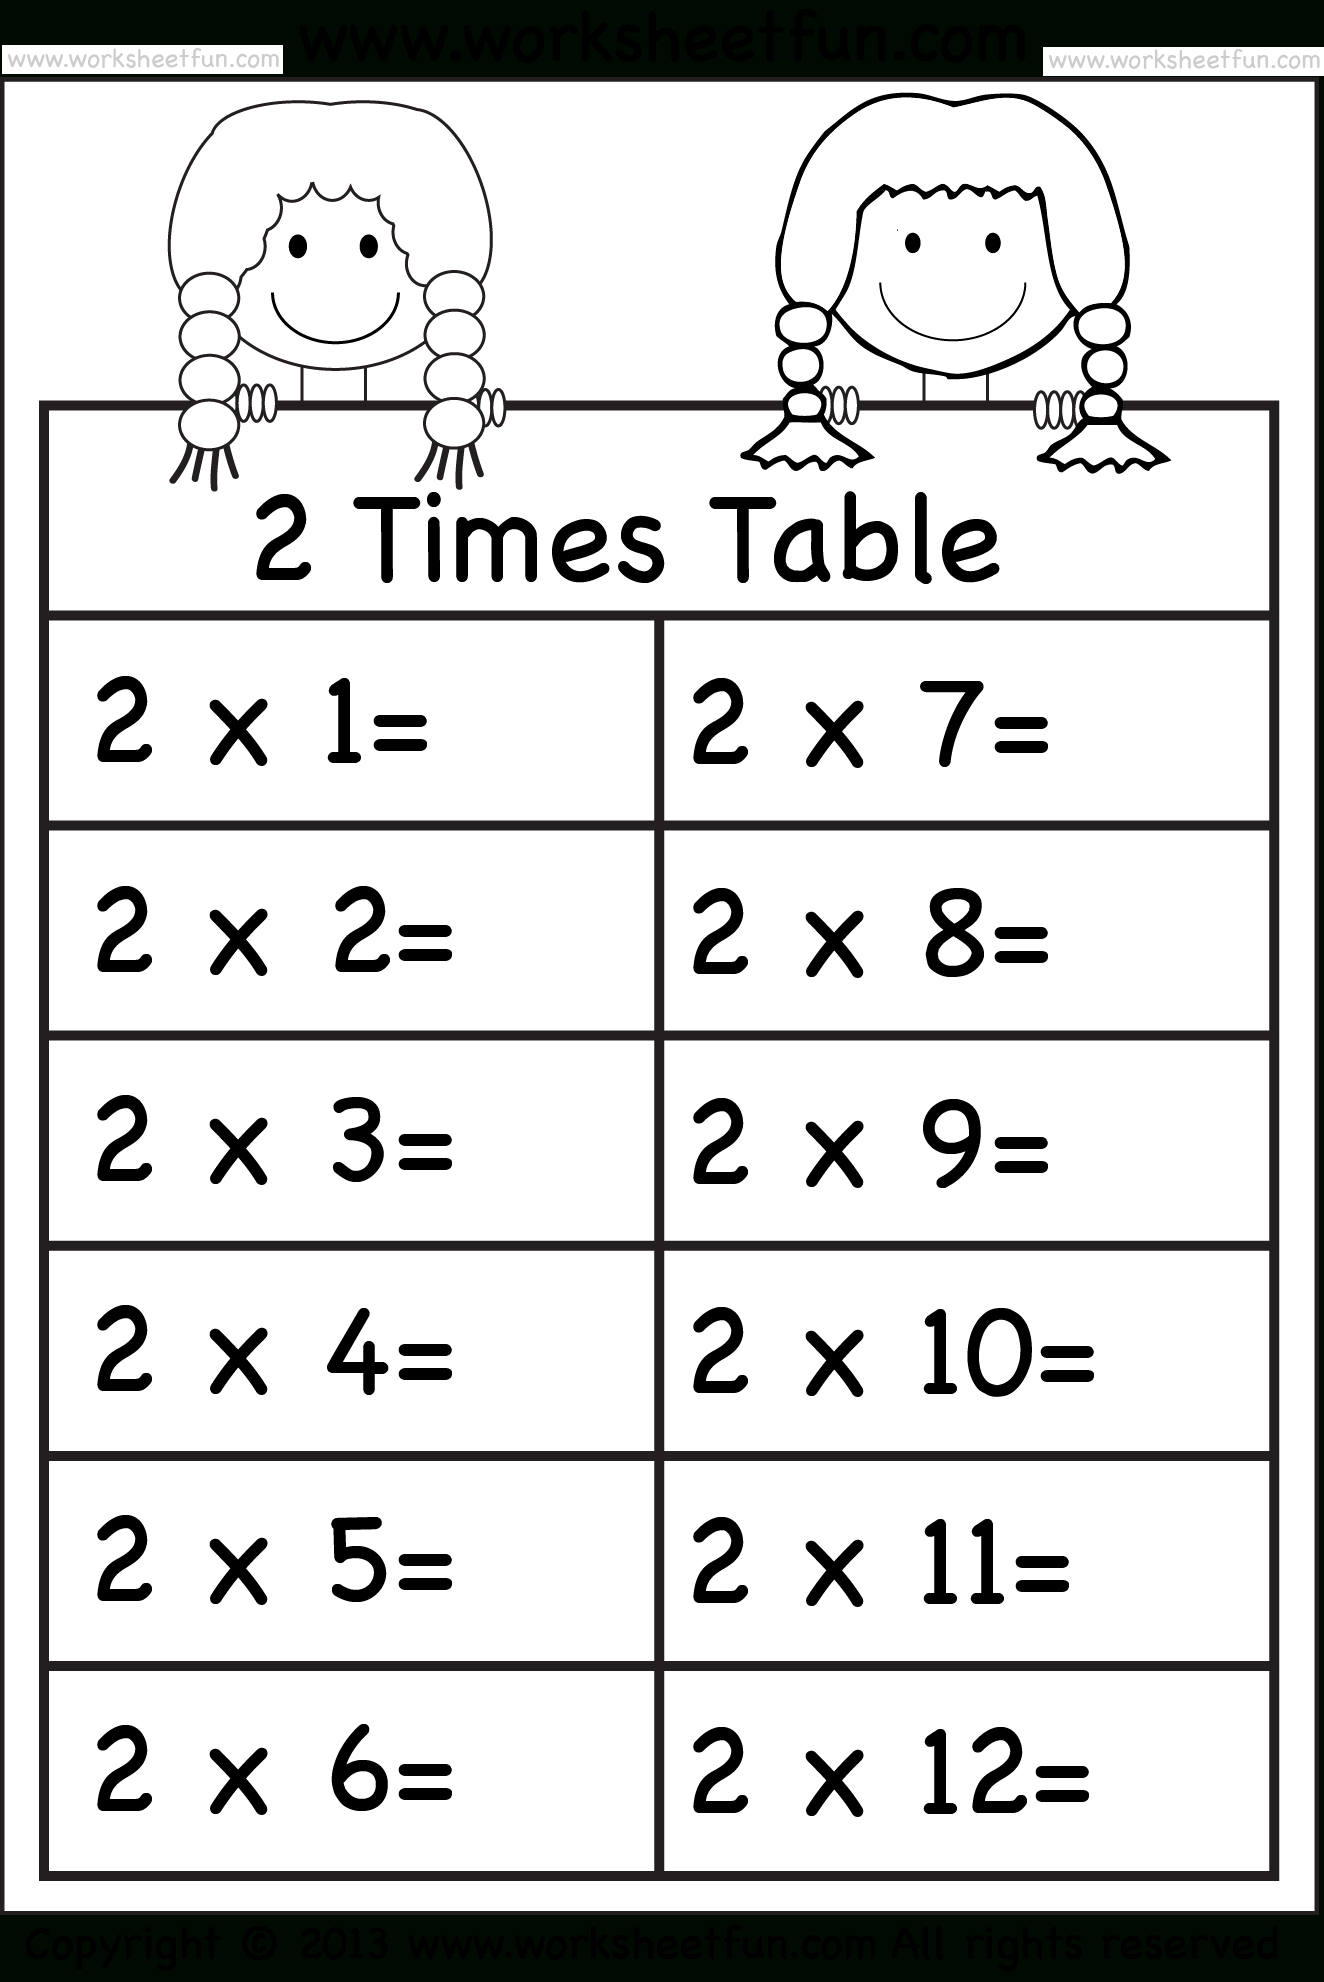 Times Tables Worksheets – 2, 3, 4, 5, 6, 7, 8, 9, 10, 11 And intended for Multiplication Worksheets 3 Times Tables